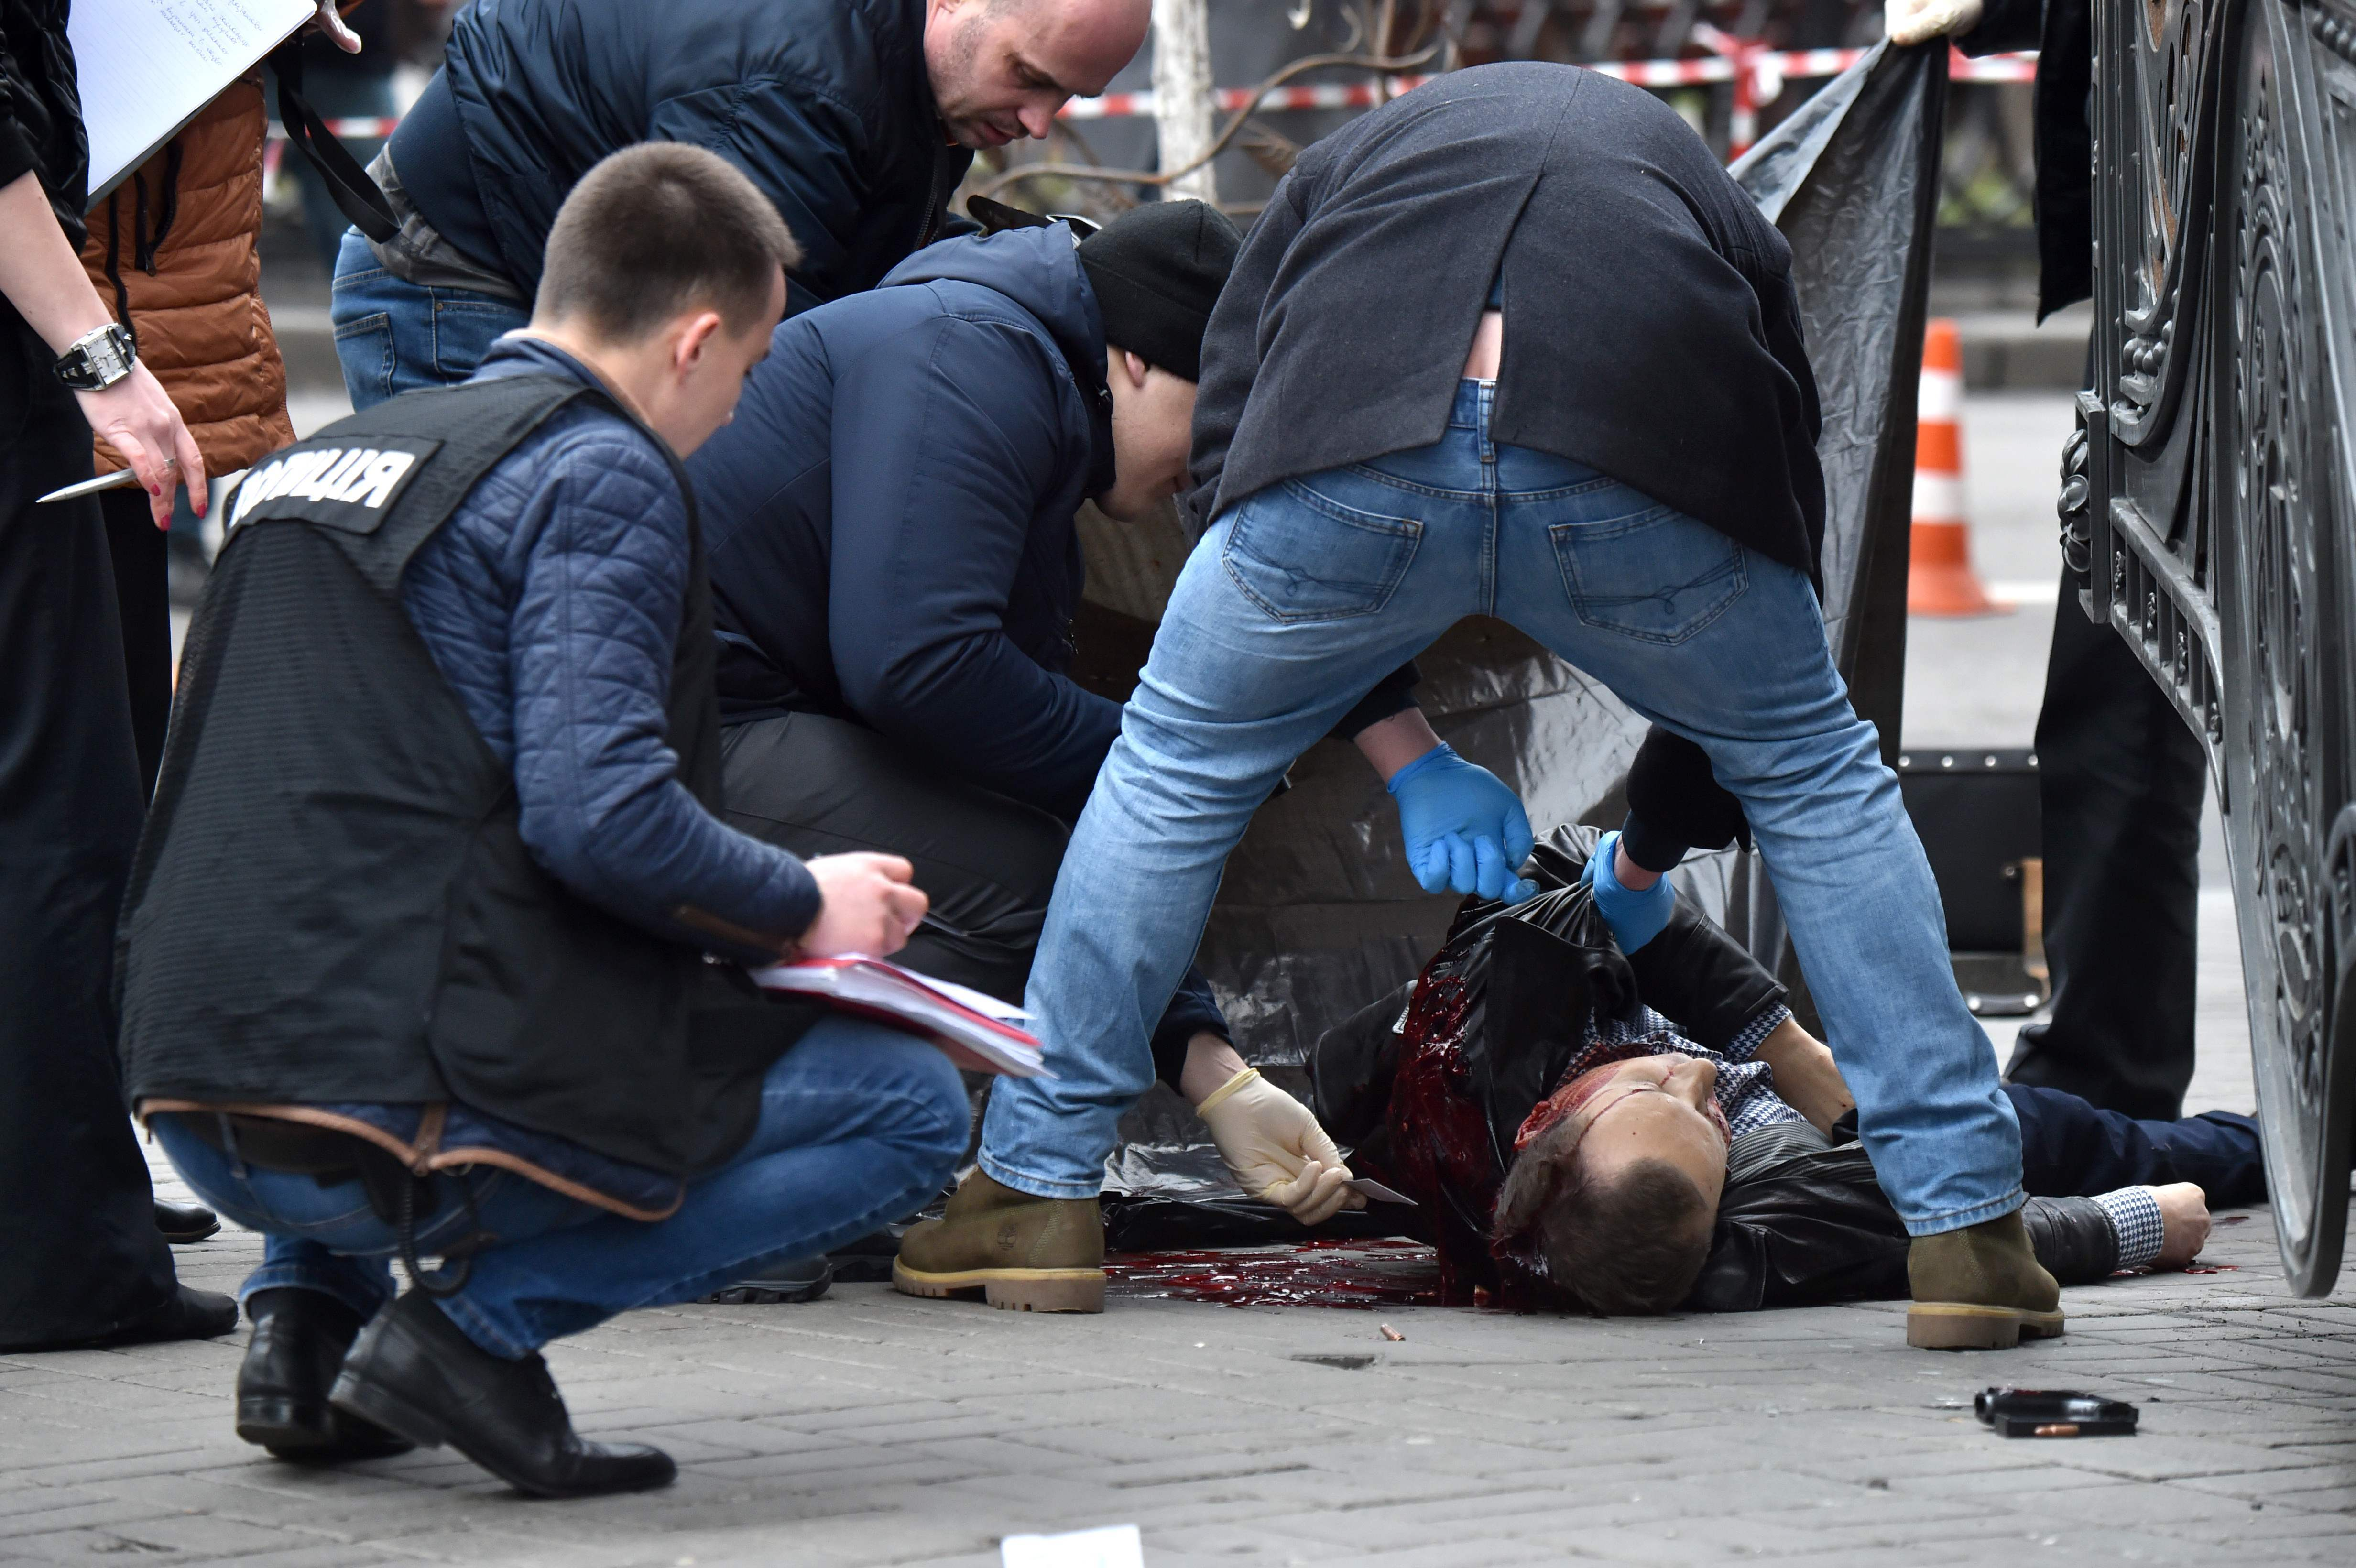 """TOPSHOT - EDITORS NOTE: Graphic content / Ukrainian police experts examine the body of former Russian MP Denis Voronenkov after he was shot dead on March 23, 2017 in the center of Kiev. Ukrainian President blamed Russia for the murder of Voronenkov, who moved to Ukraine last year and was wanted by Russia for fraud, saying it was an """"act of state terrorism."""" / AFP PHOTO / Sergei SUPINSKY / TT / kod 444"""